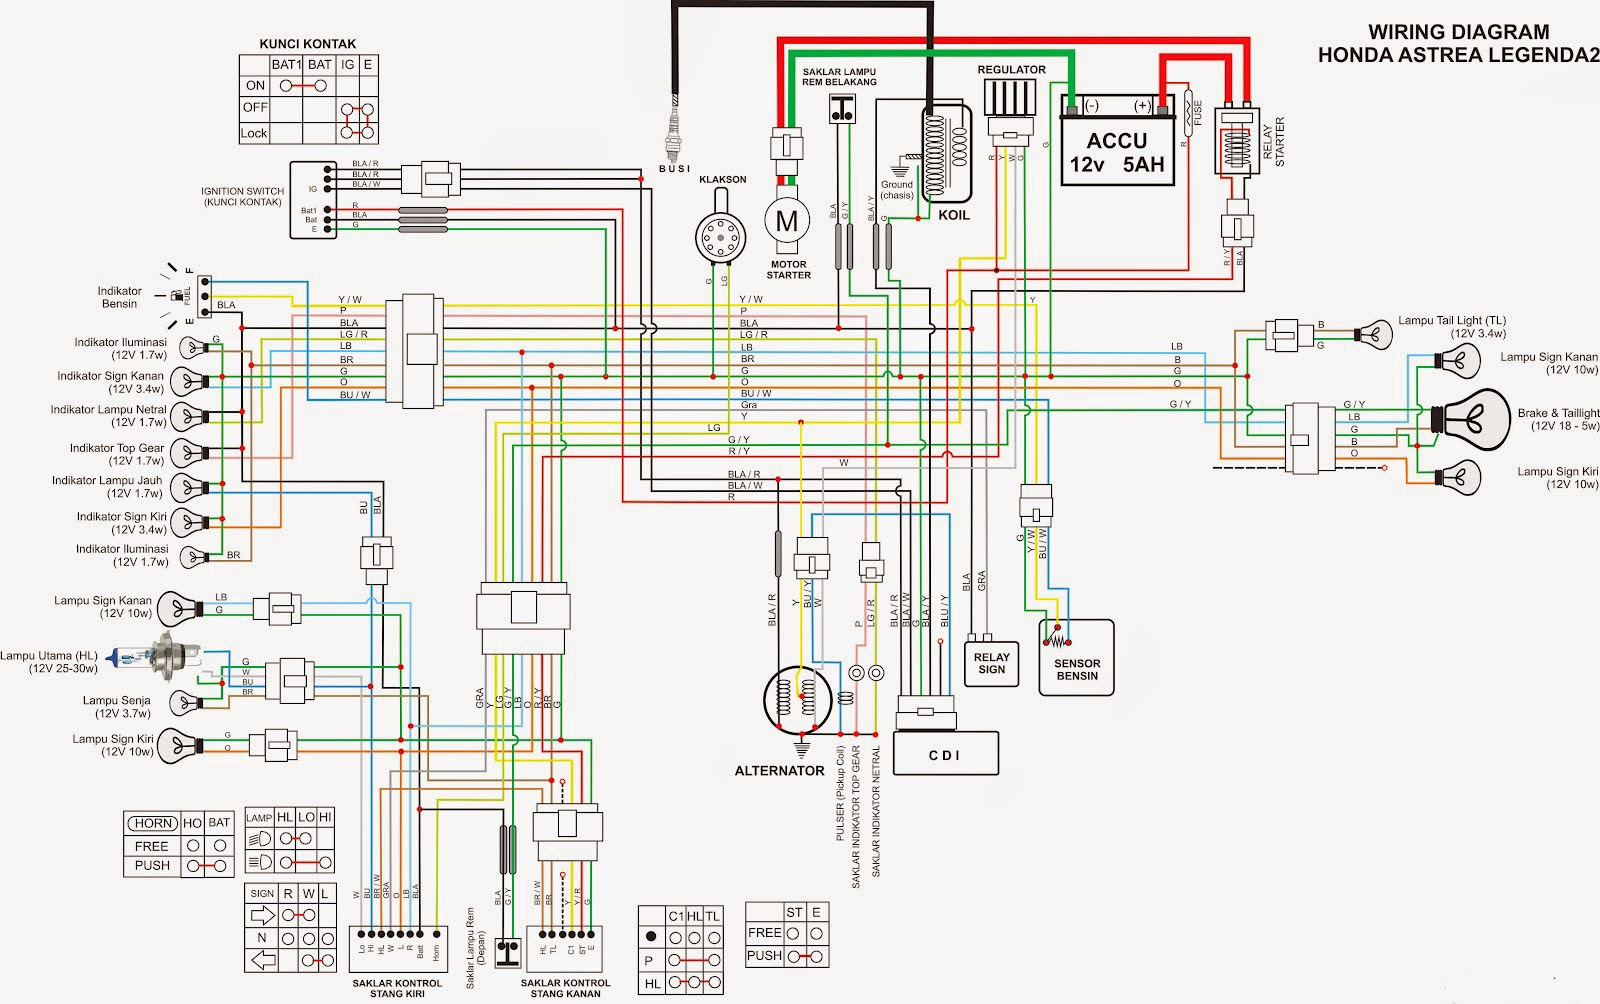 wiring diagram honda kharisma auto electrical wiring diagram u2022 rh 6weeks co uk